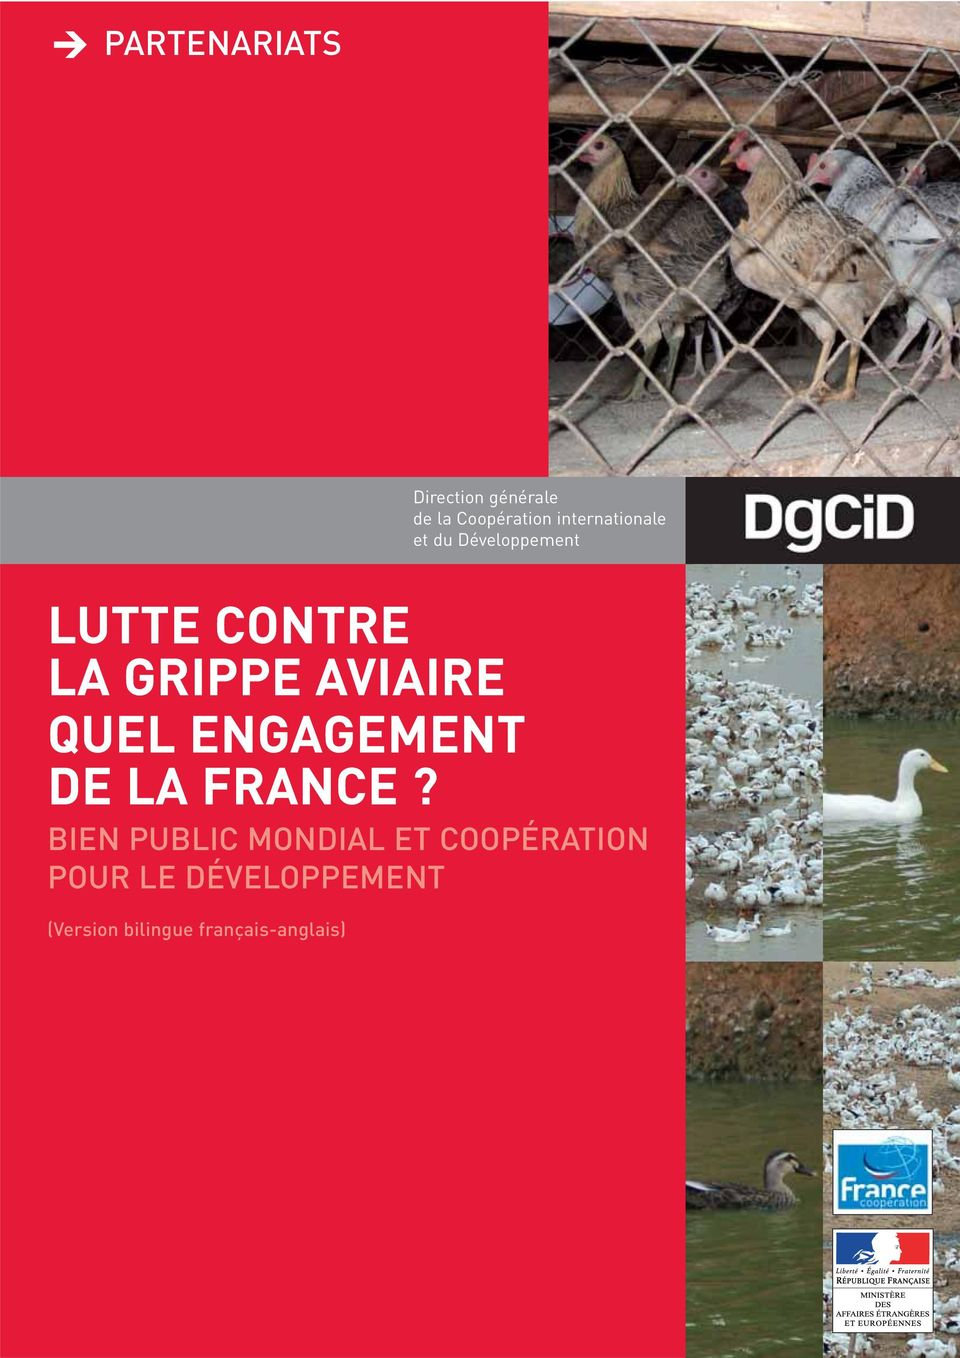 AVIAIRE QUEL ENGAGEMENT DE LA FRANCE?